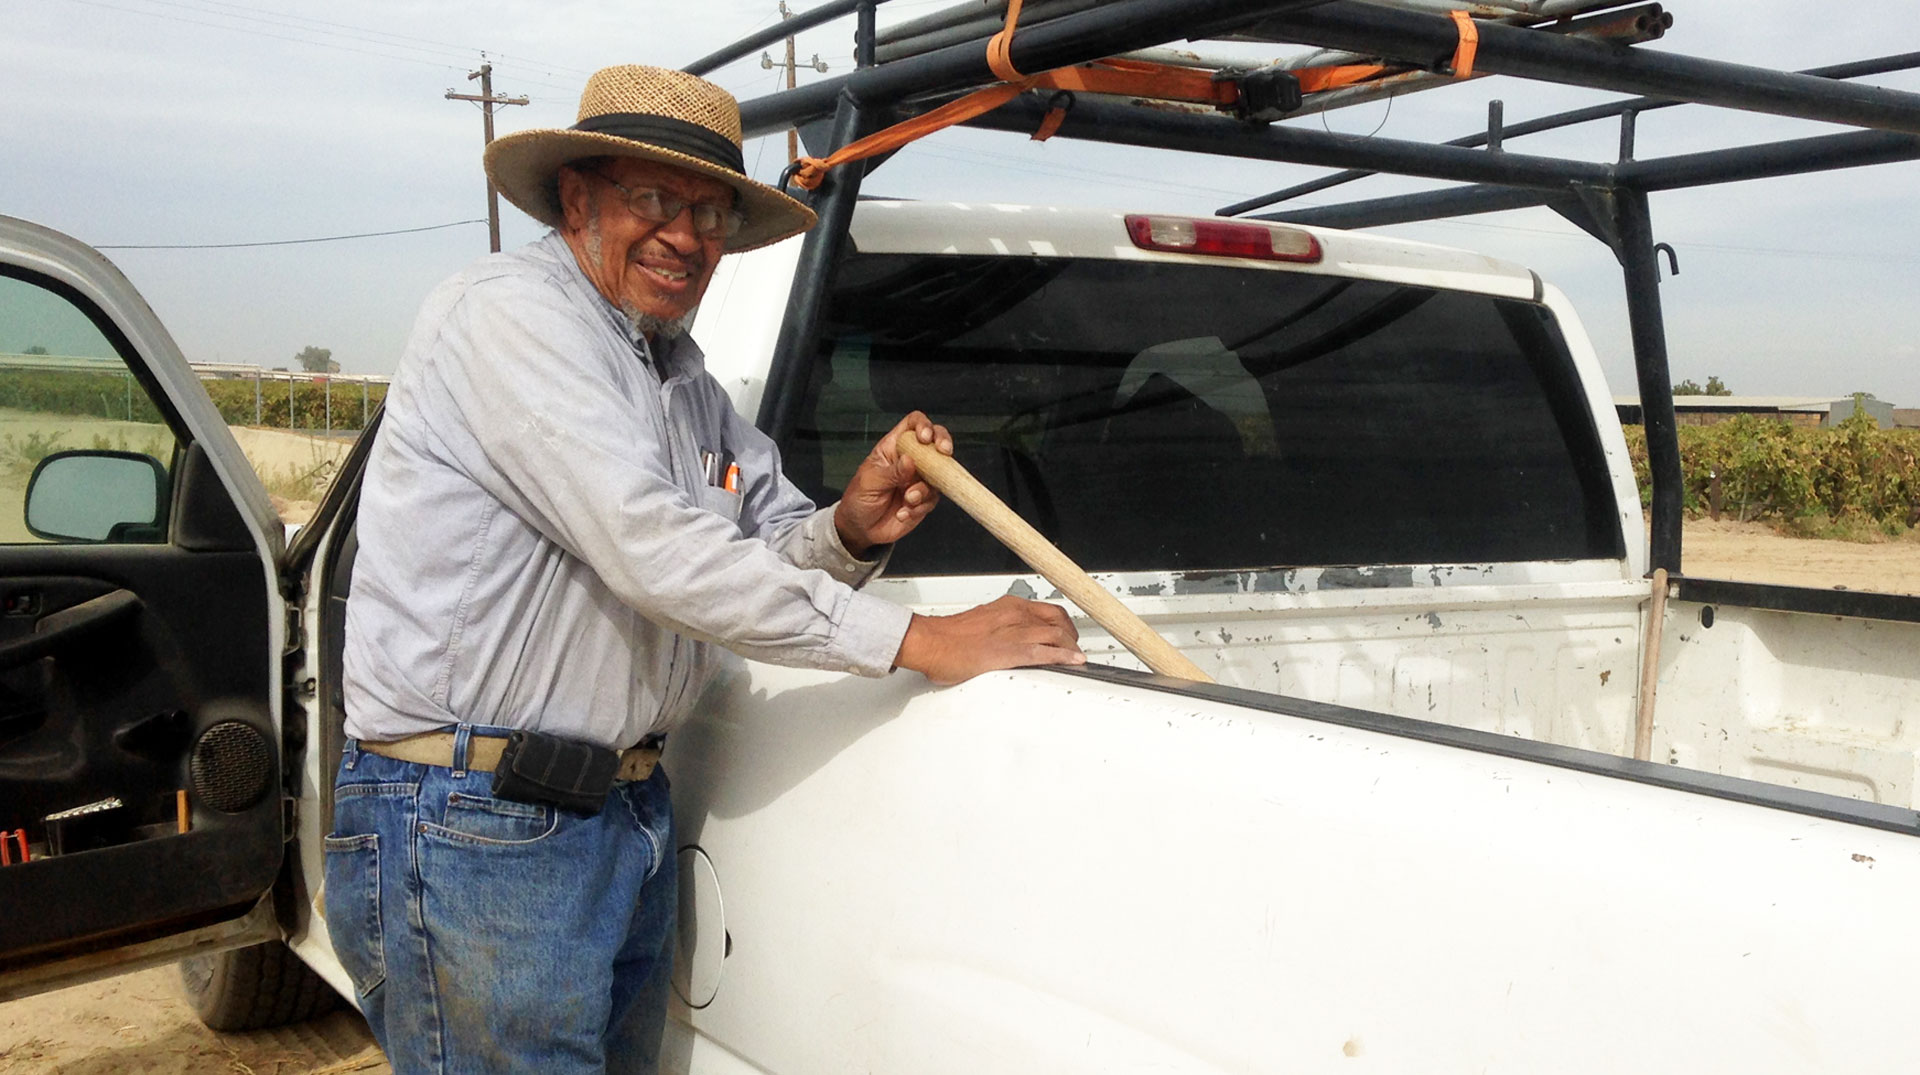 Will Scott Jr. gets ready to head home after a day on his farm.